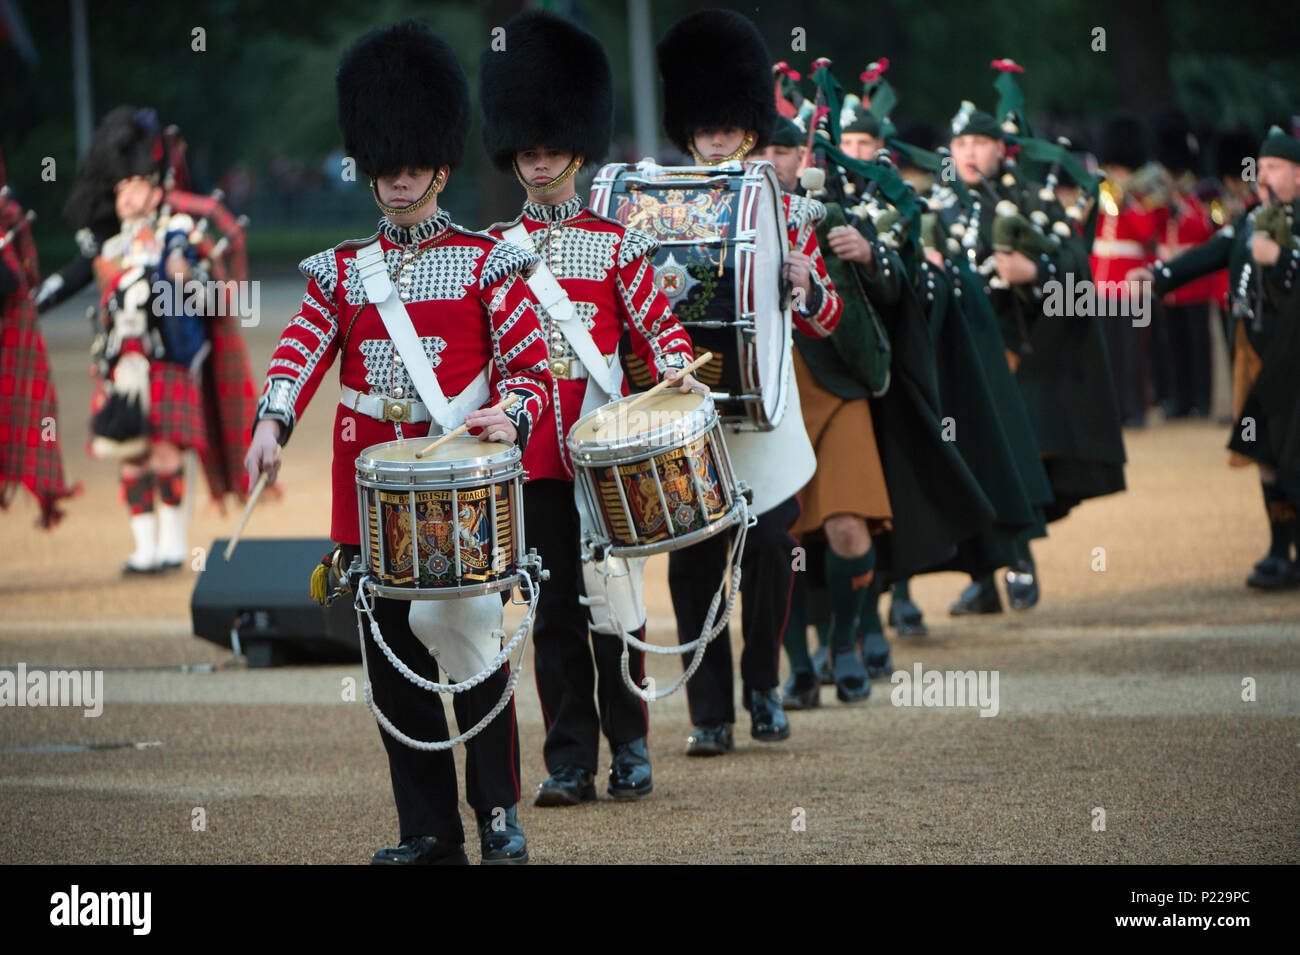 7 June 2018, London, UK. British Army Beating Retreat evening military music spectacular in Horse Guards Parade. Credit: Malcolm Park/Alamy - Stock Image